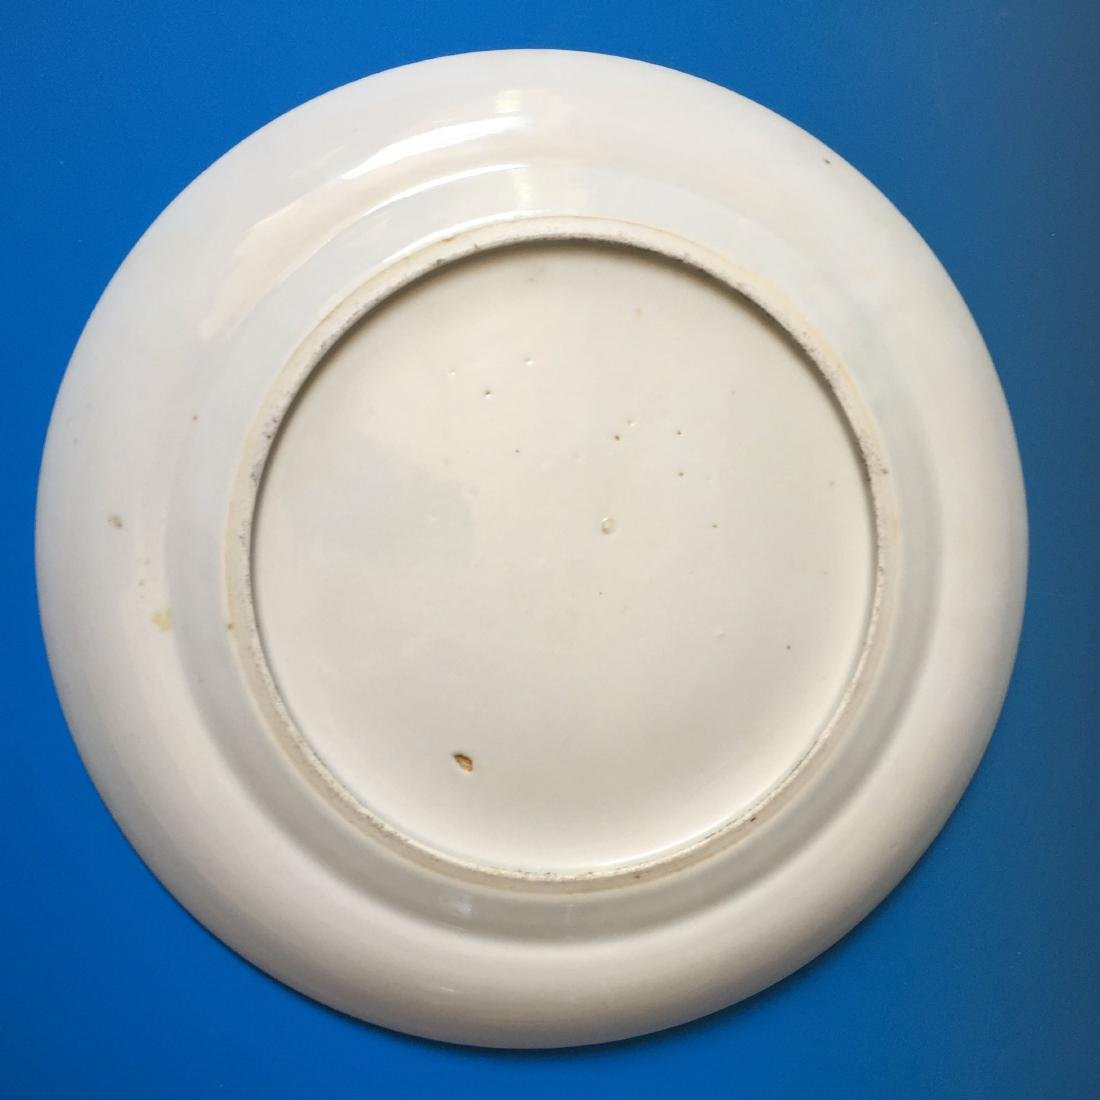 A BEAUTIFUL CHINESE ANTIQUE PLATE,19C. - 5